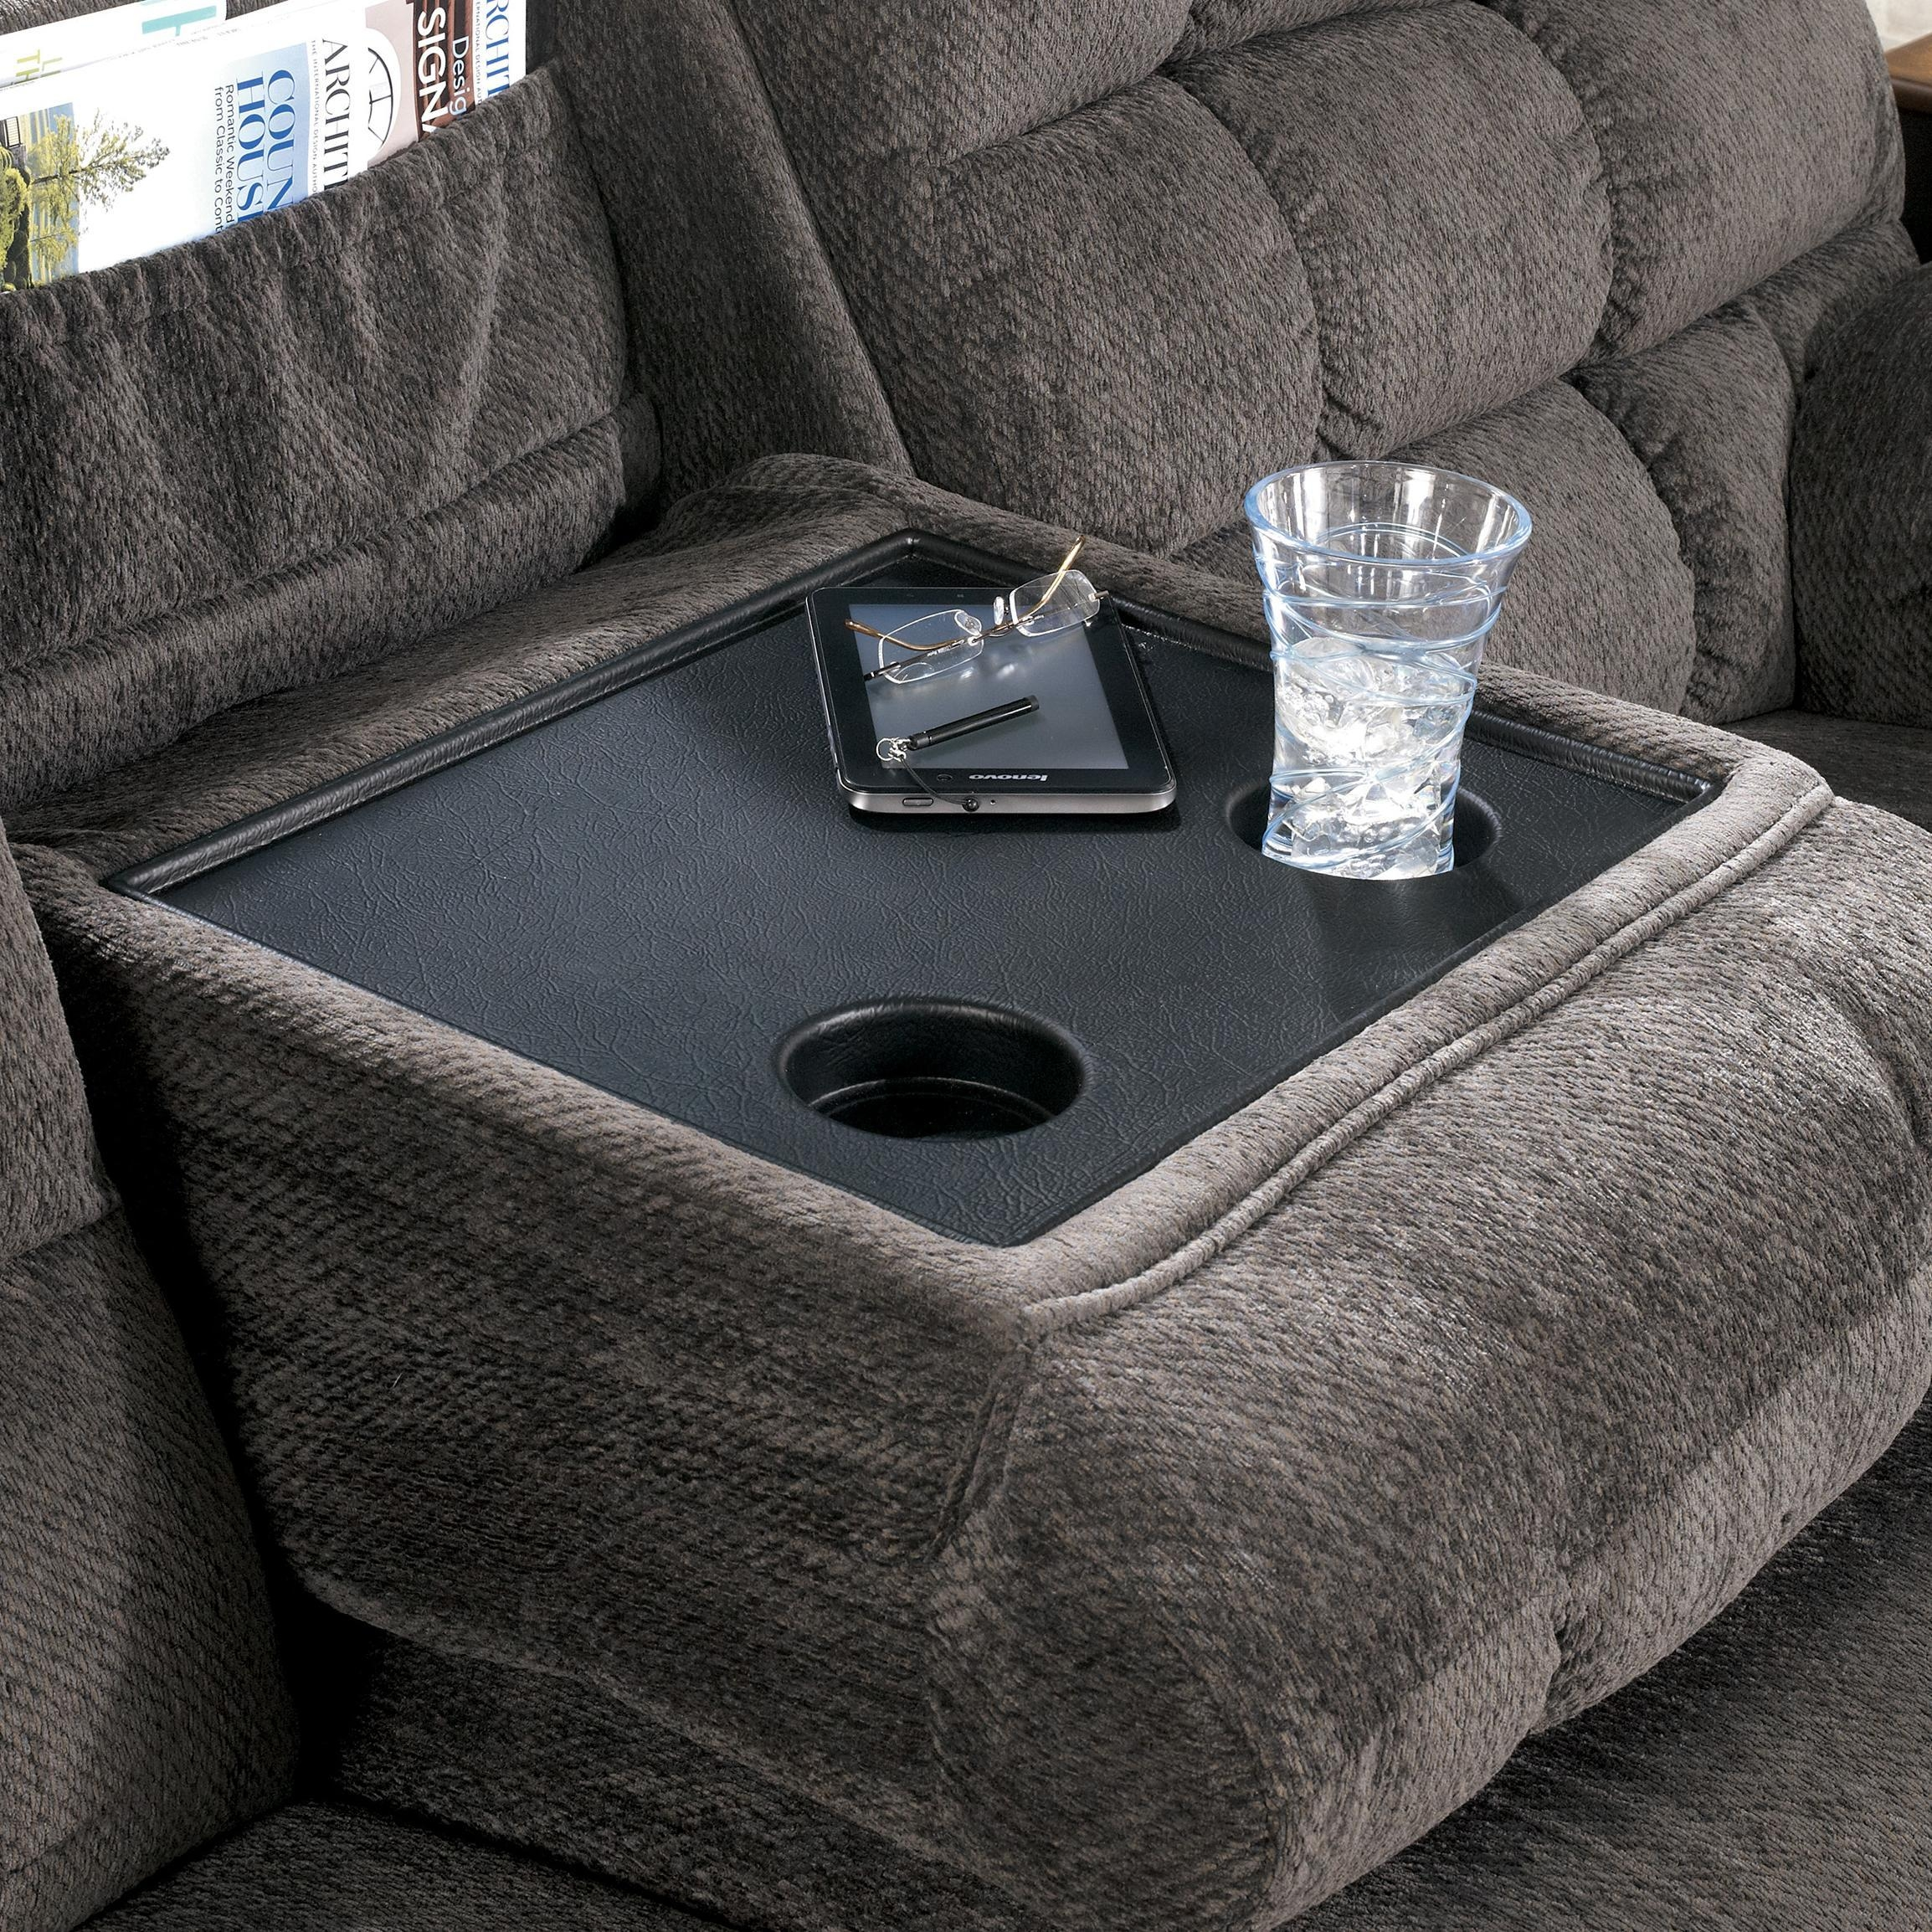 Reclining Sectional With Left Side Loveseat, Cup Holders And With Regard To Sectional With Cup Holders (View 19 of 20)